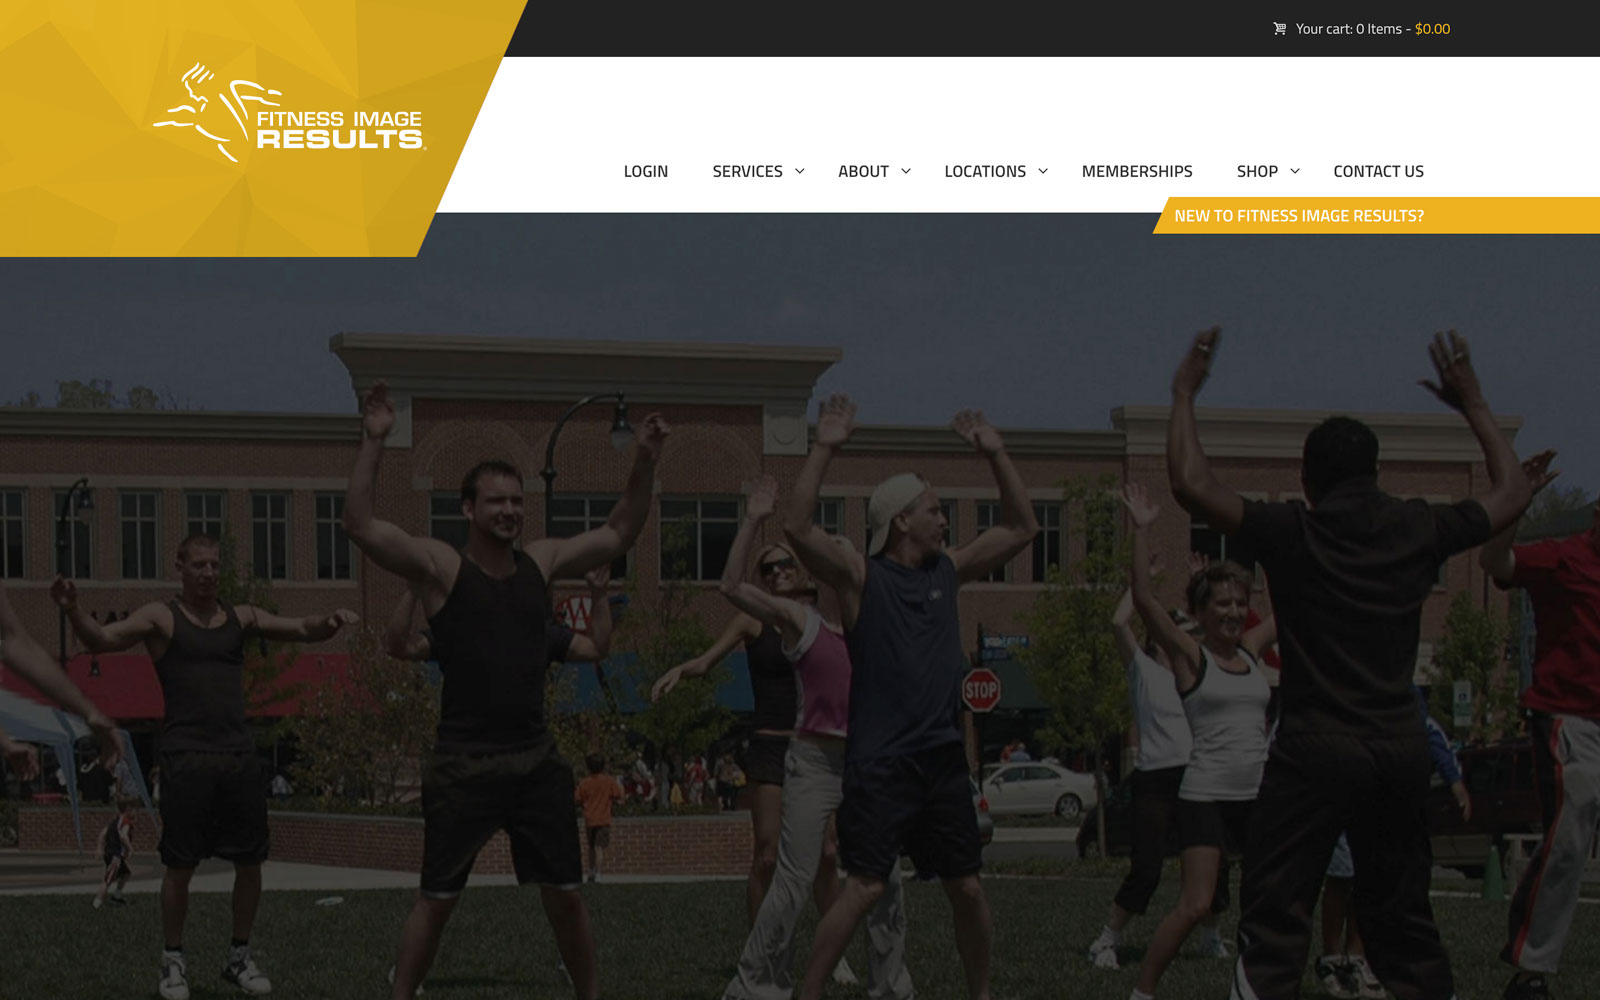 Fitness Image Results Ecommerce Website